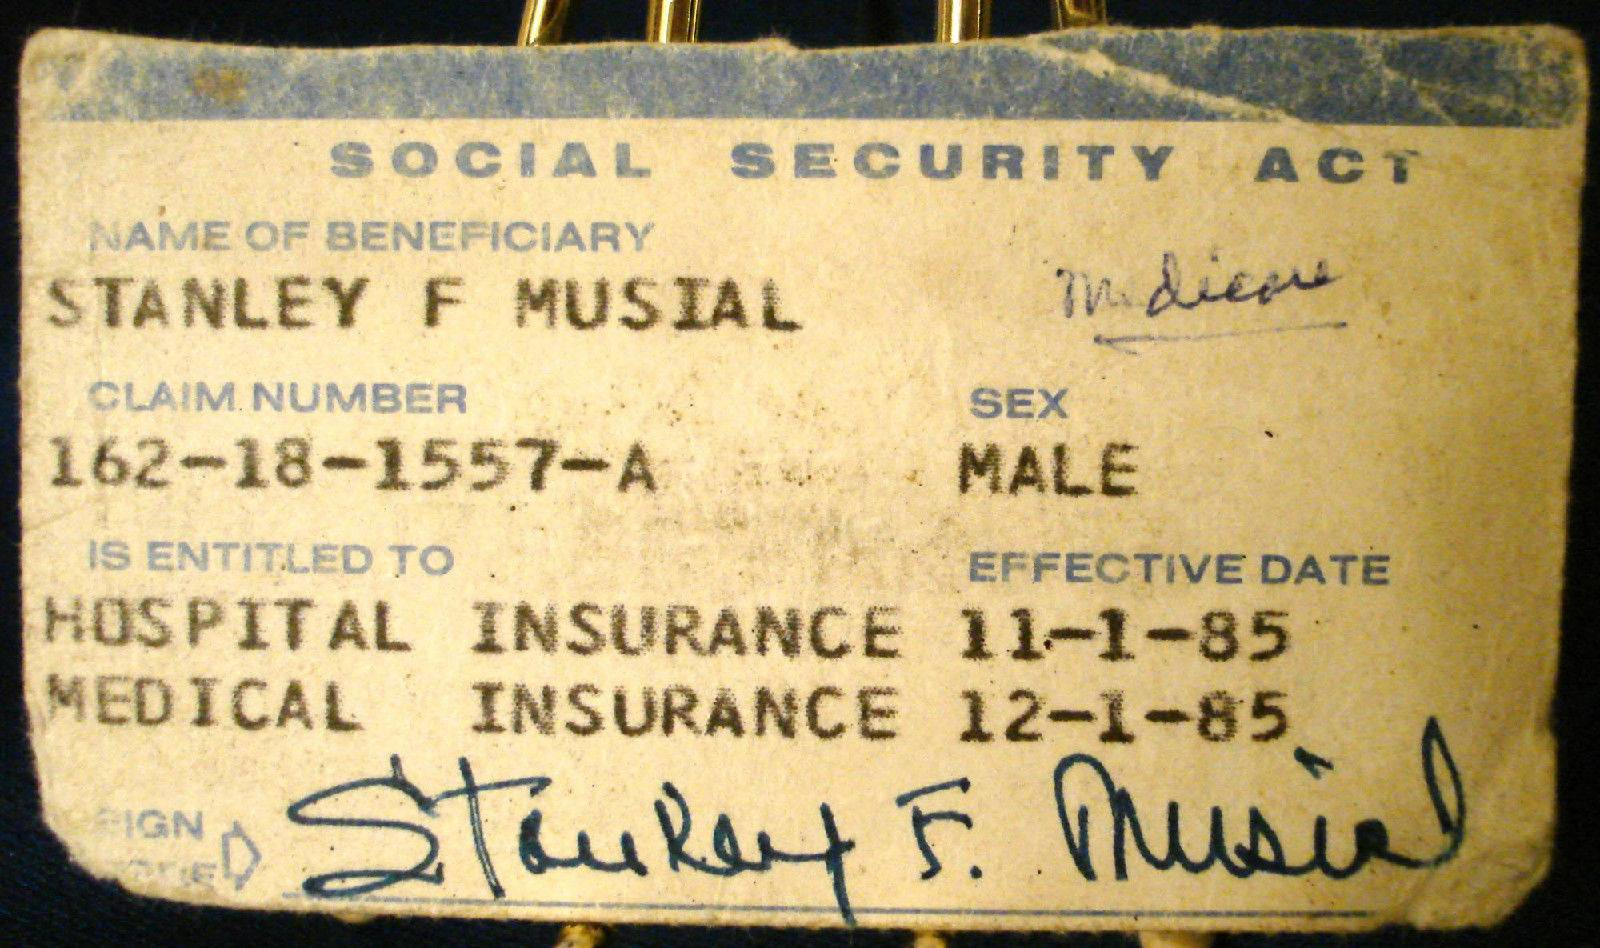 STAN MUSIAL's OWN 1985 Medicare Card FROM MUSIAL ESTATE